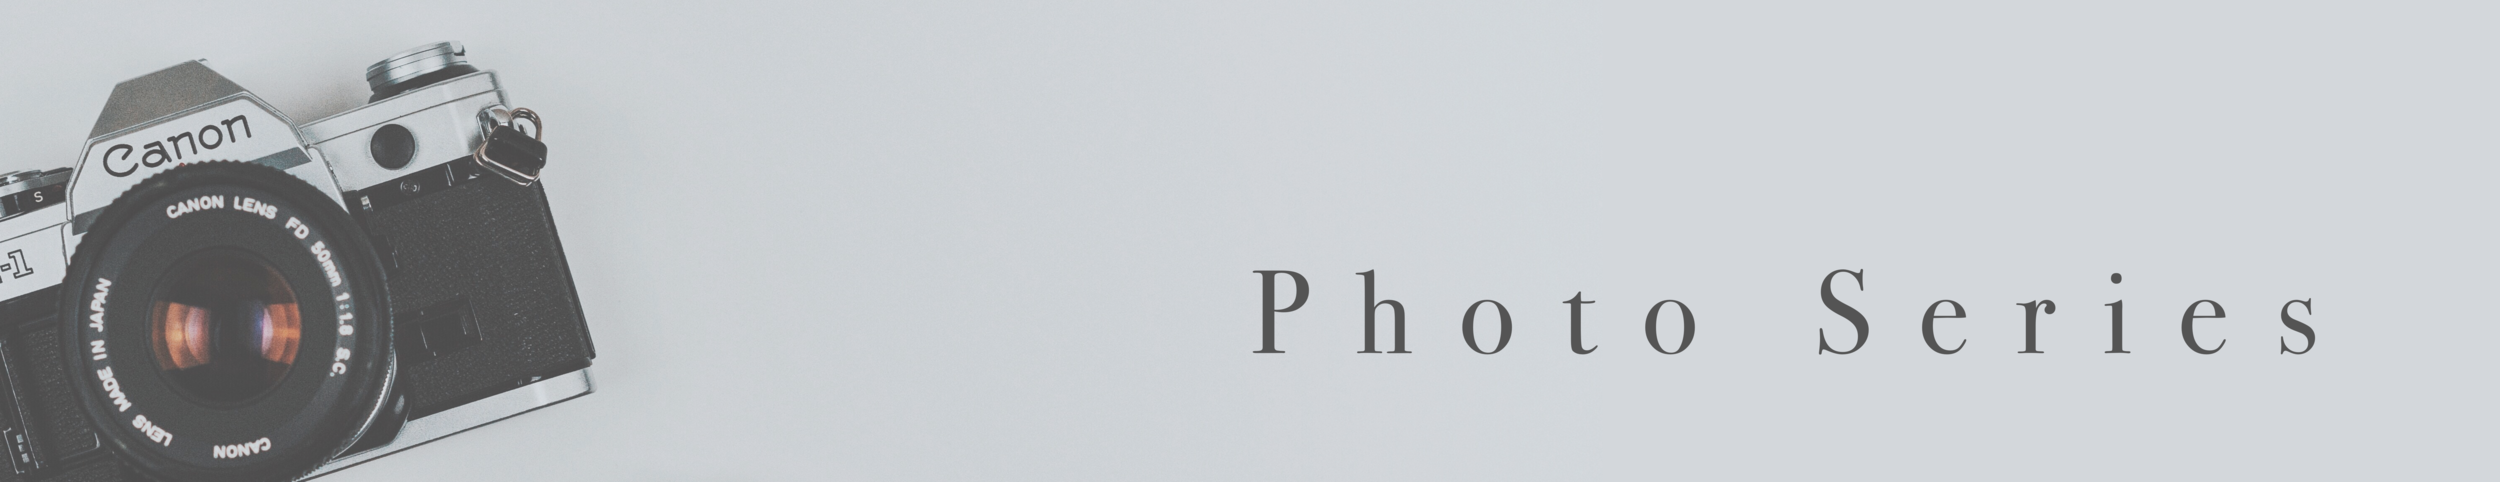 Photography Series Header.png